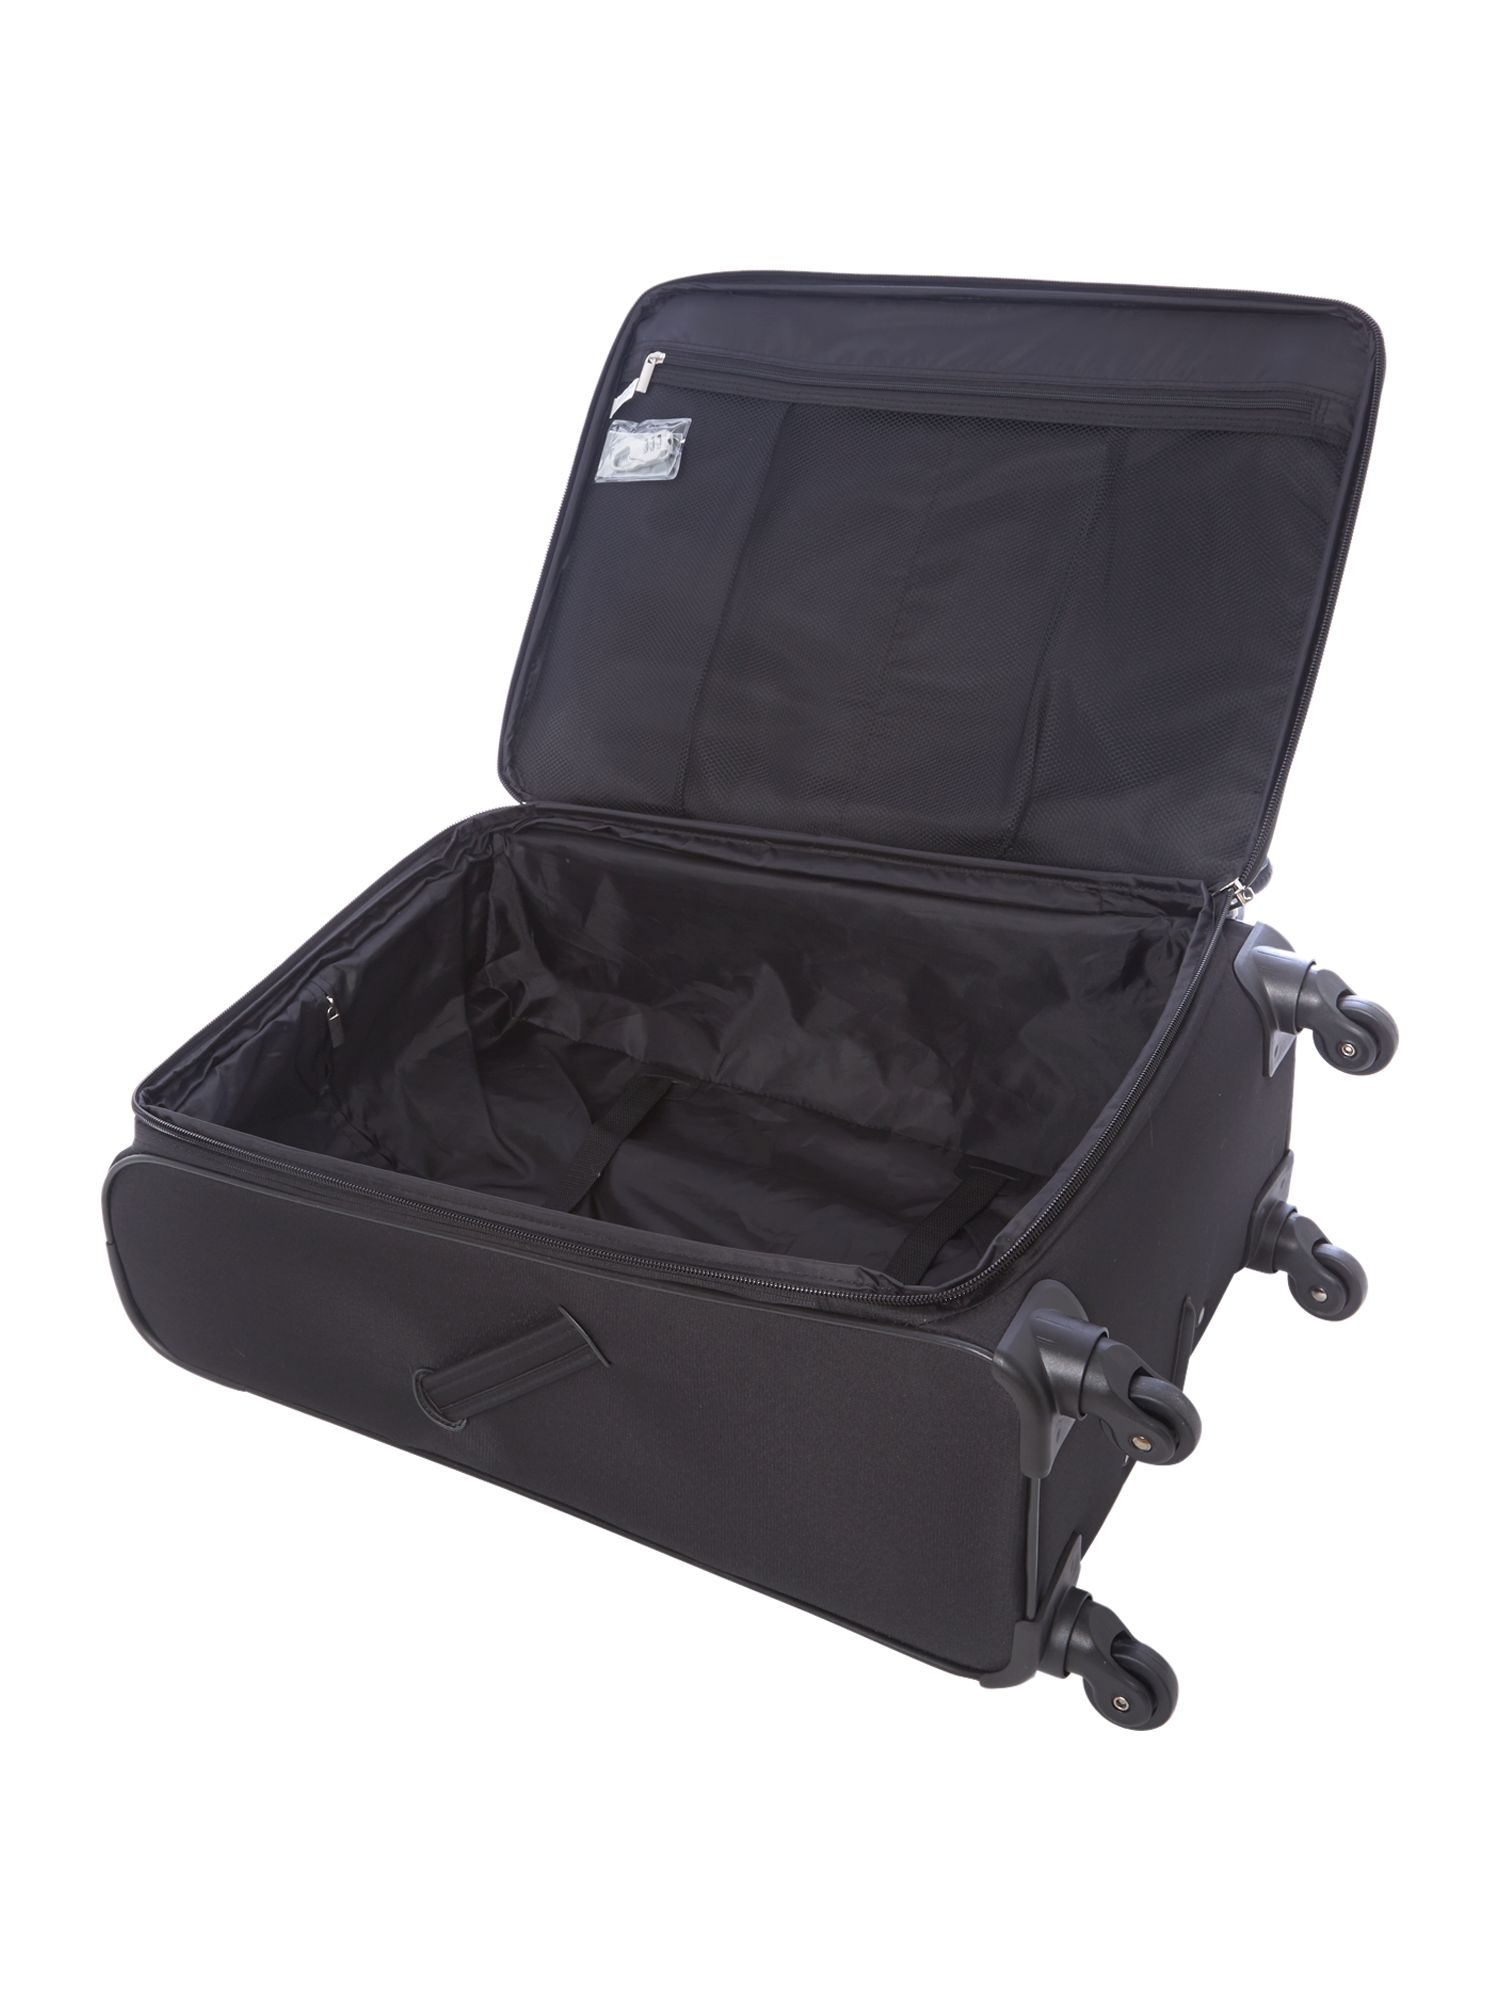 Axial 350 black 4 wheel soft medium case